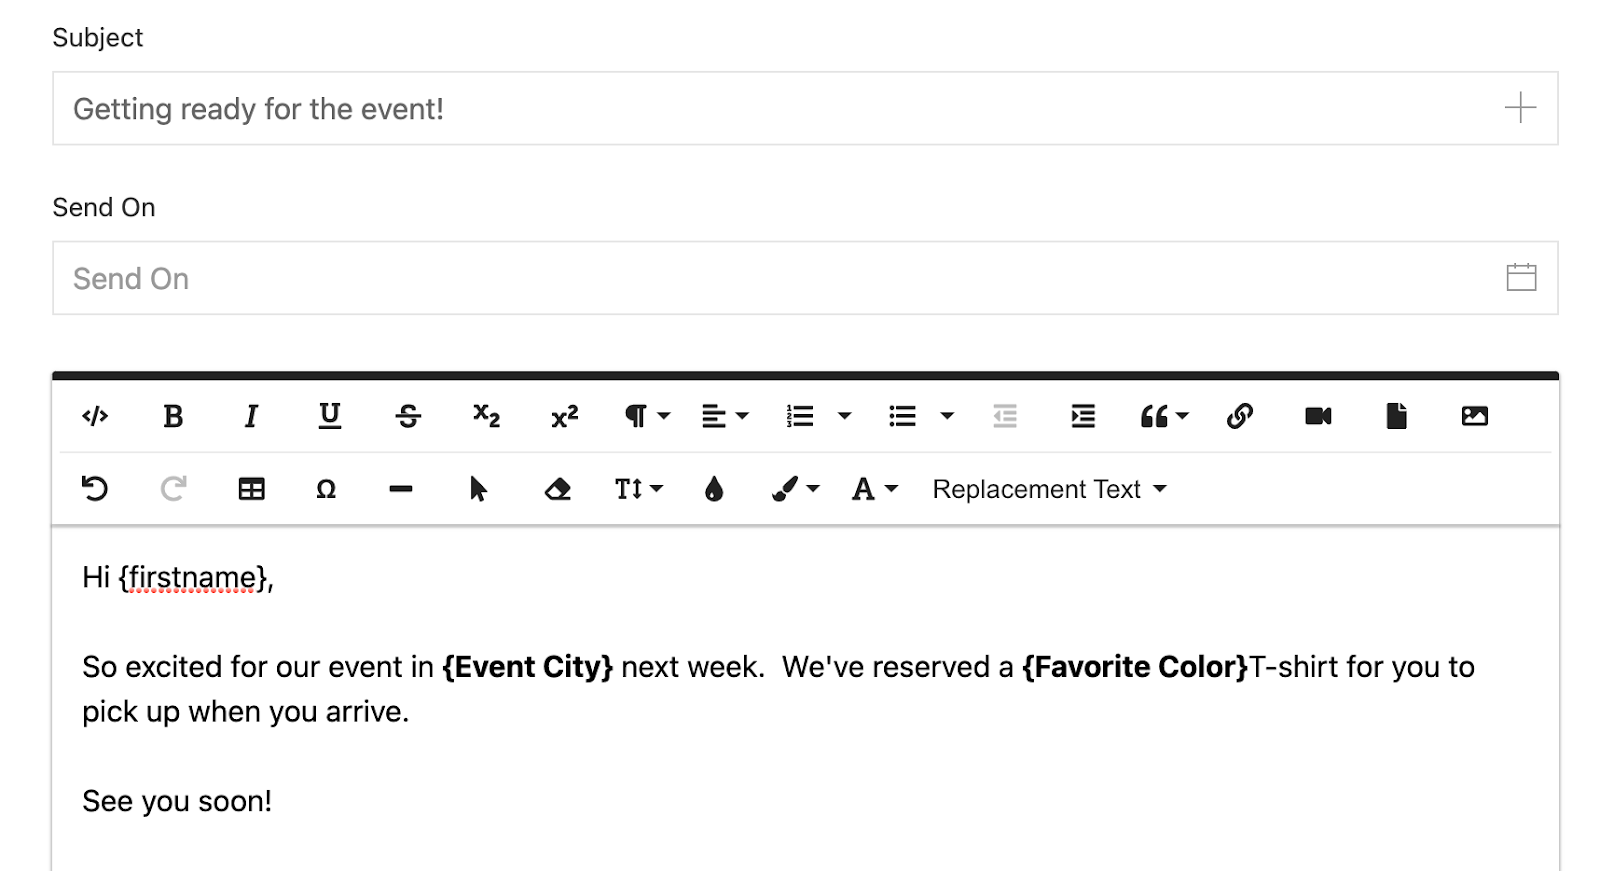 Connect 365 custom fields allow you to personalize your email outreach campaigns without creating multiple campaigns.